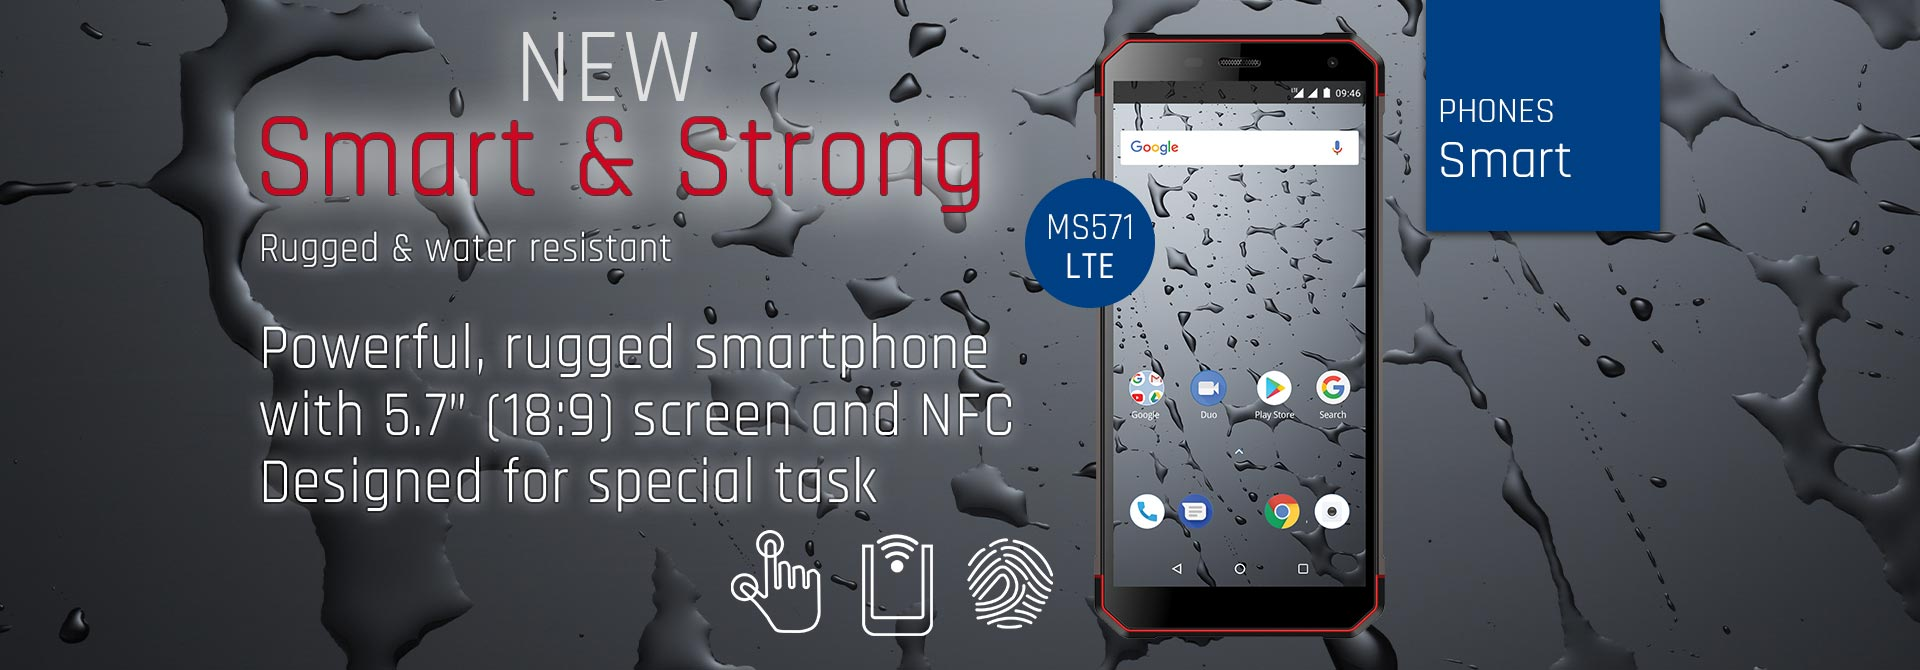 New smartphone Smart & Strong MS571 LTE